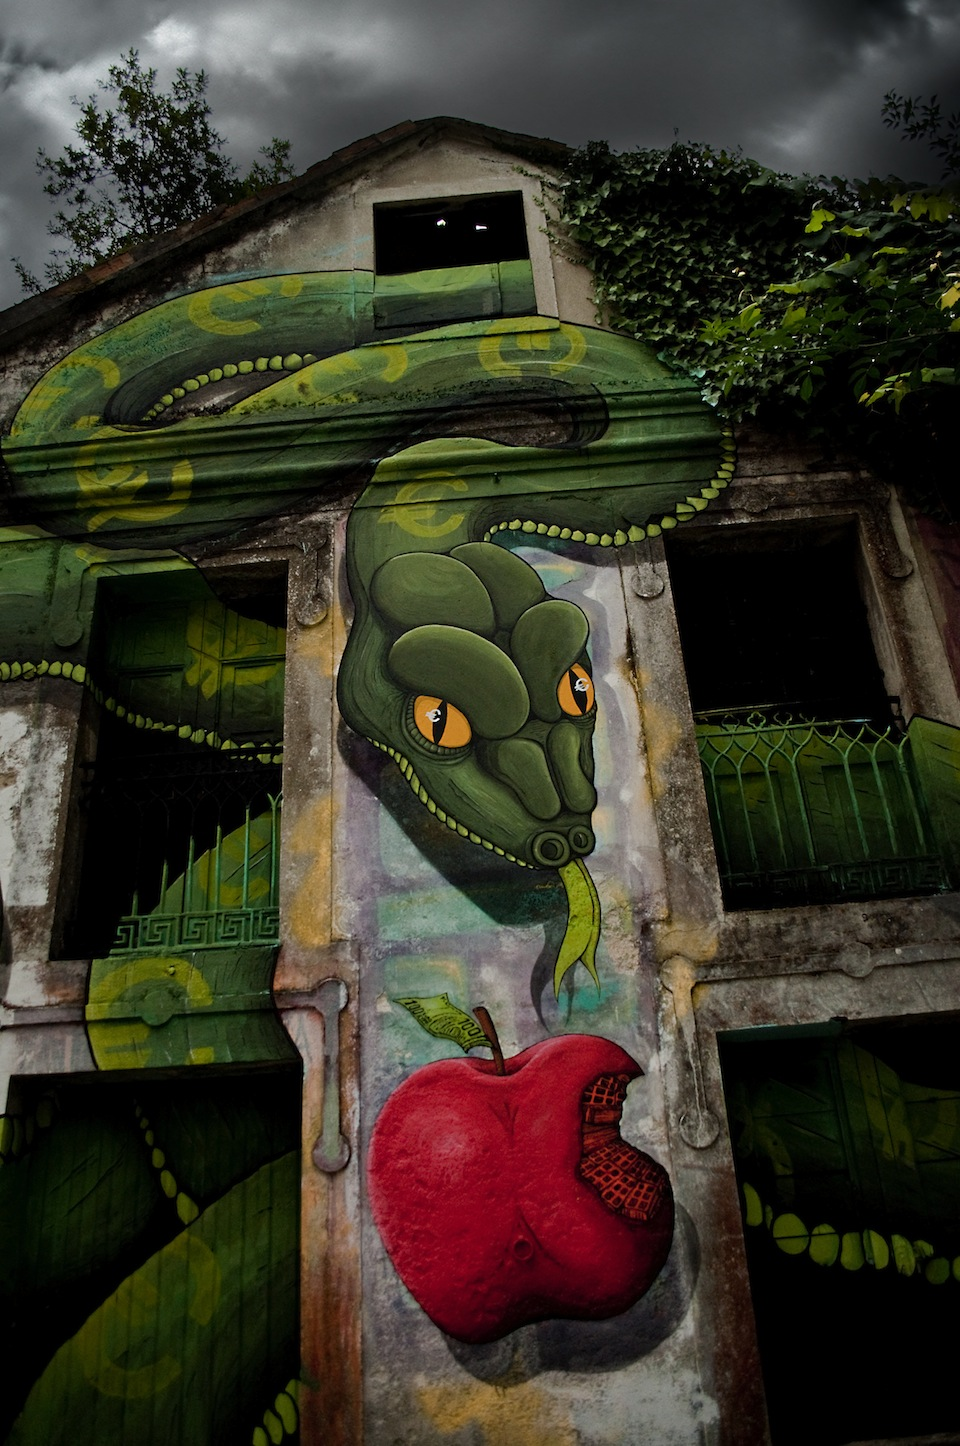 By SOKRAM. At DESORDES CREATIVAS 2012 in Ordes, Galiza, Spain 3